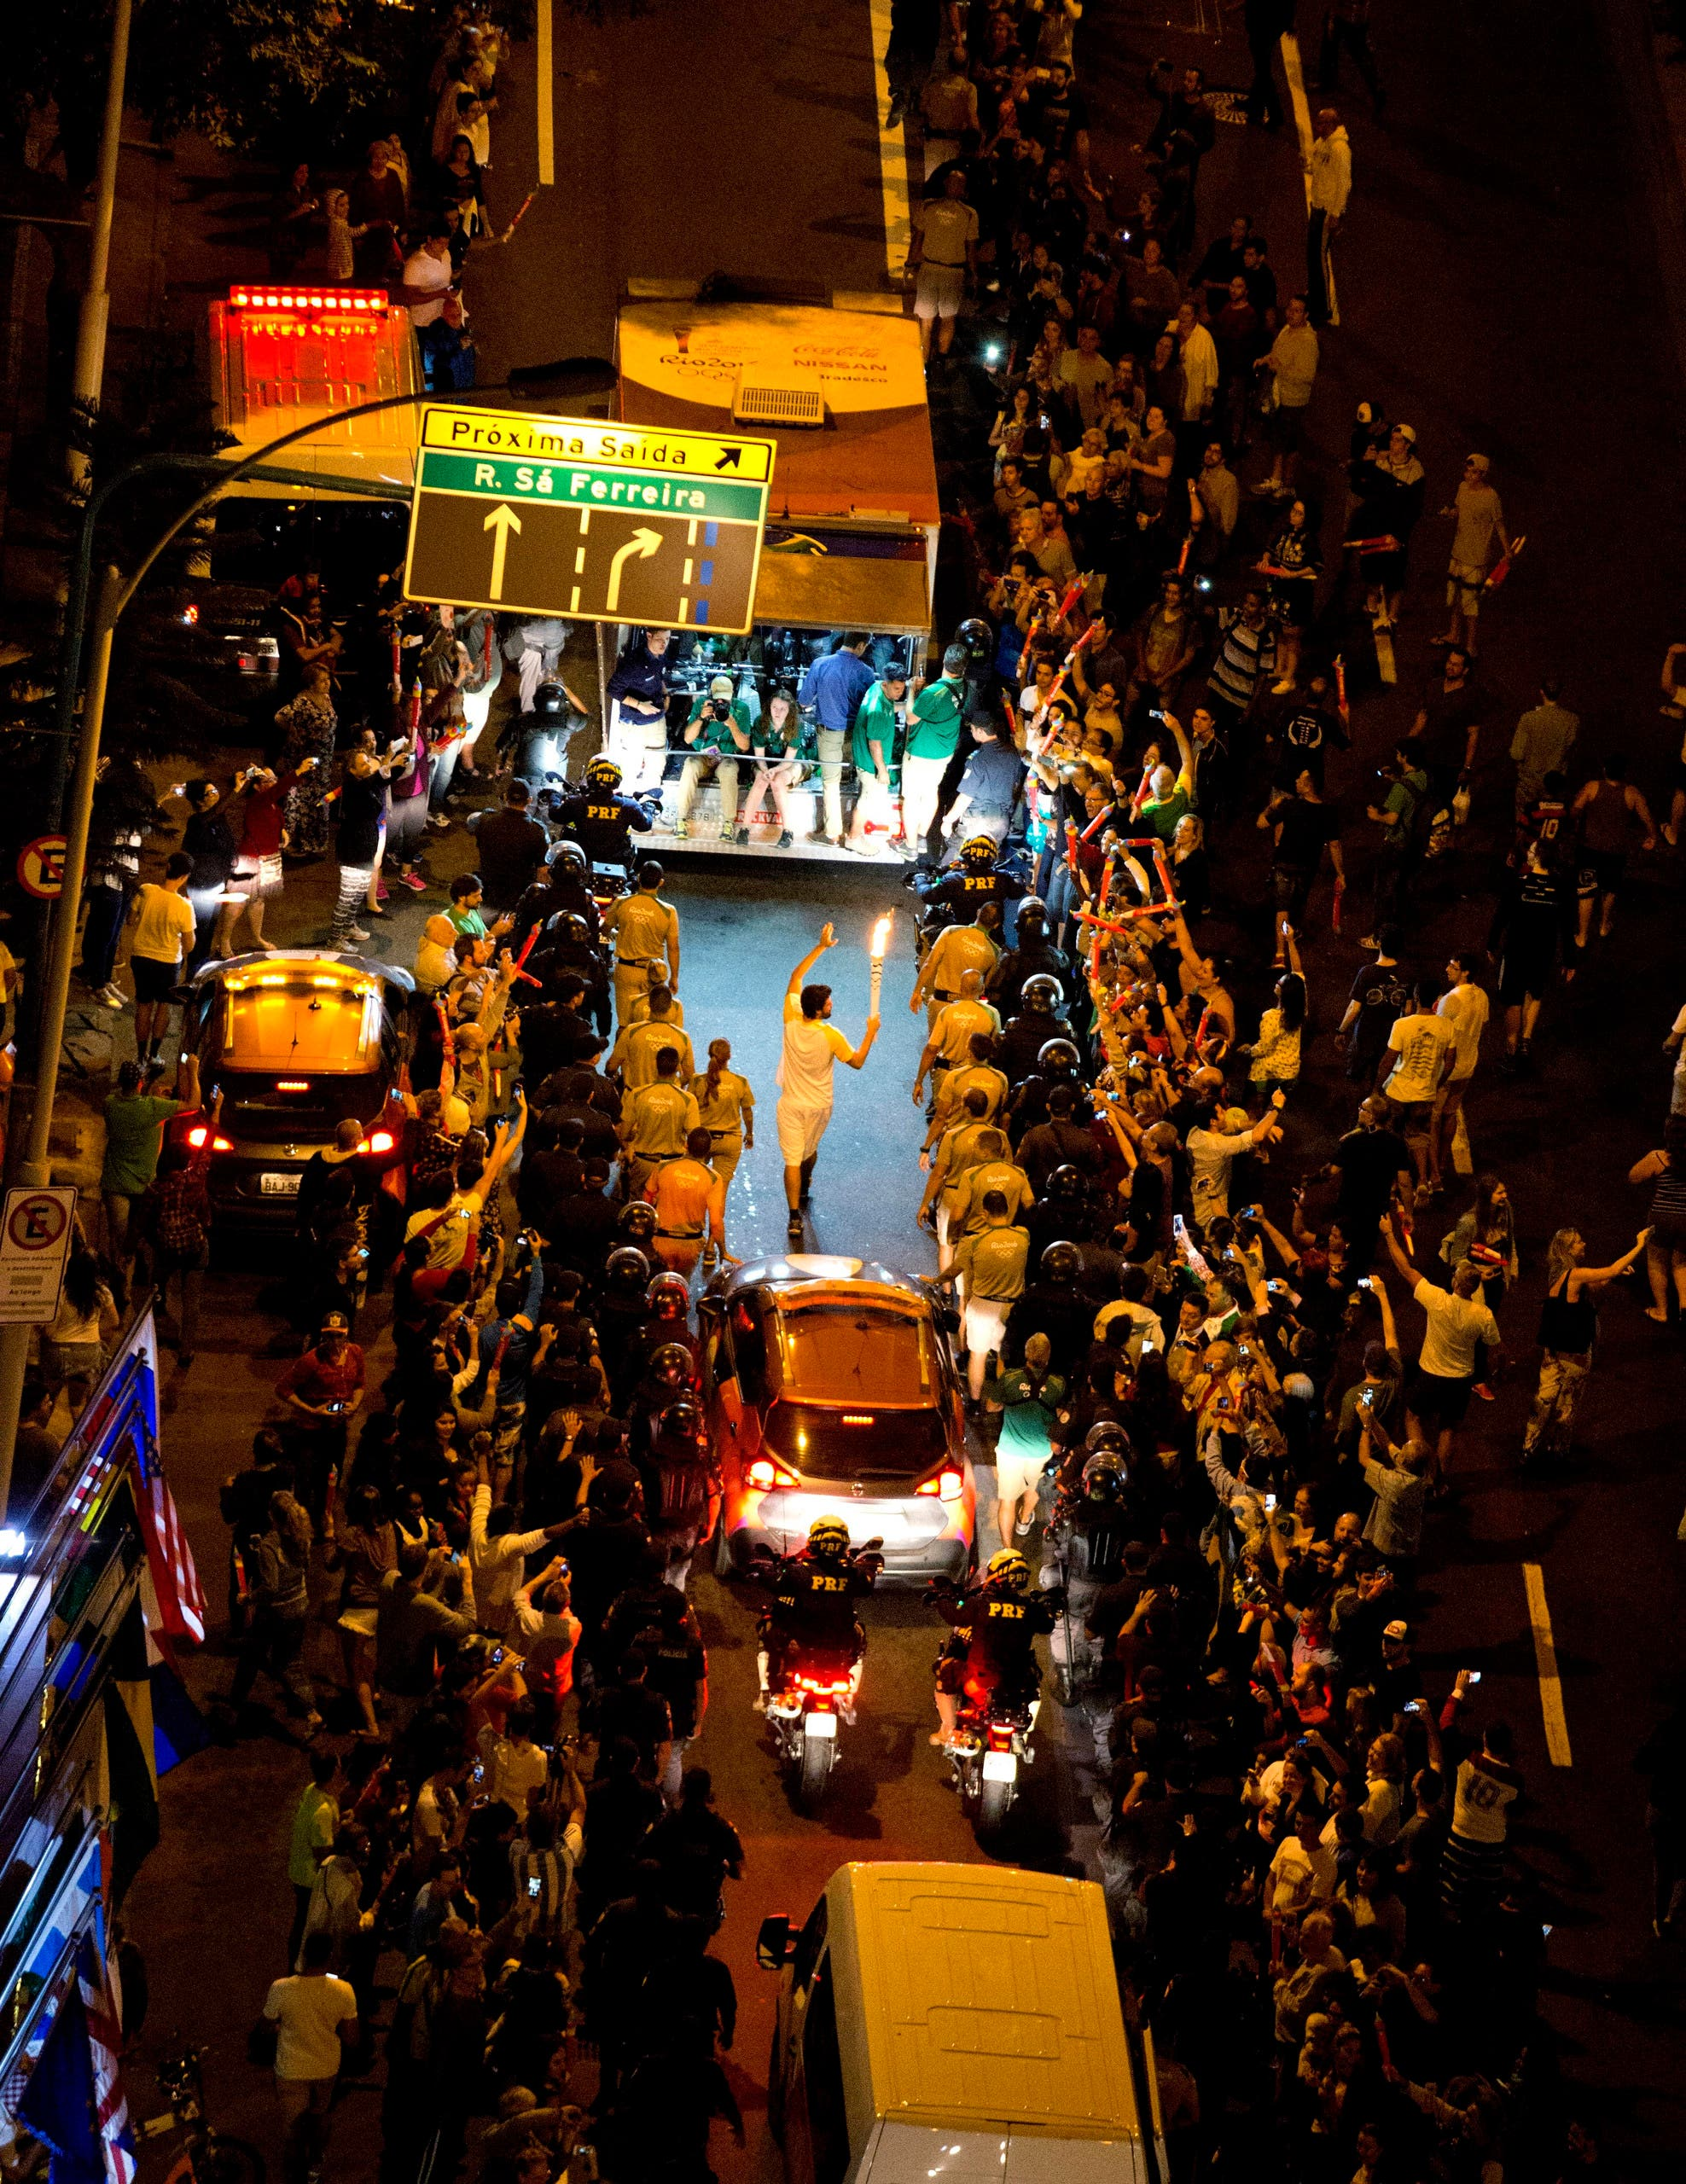 The Olympic torch is carried through the streets of Copacabana as the torch relay continues on its journey to the opening ceremony of the 2016 Summer Olympics in Rio de Janeiro, Brazil, early Friday, Aug. 5, 2016. (AP)